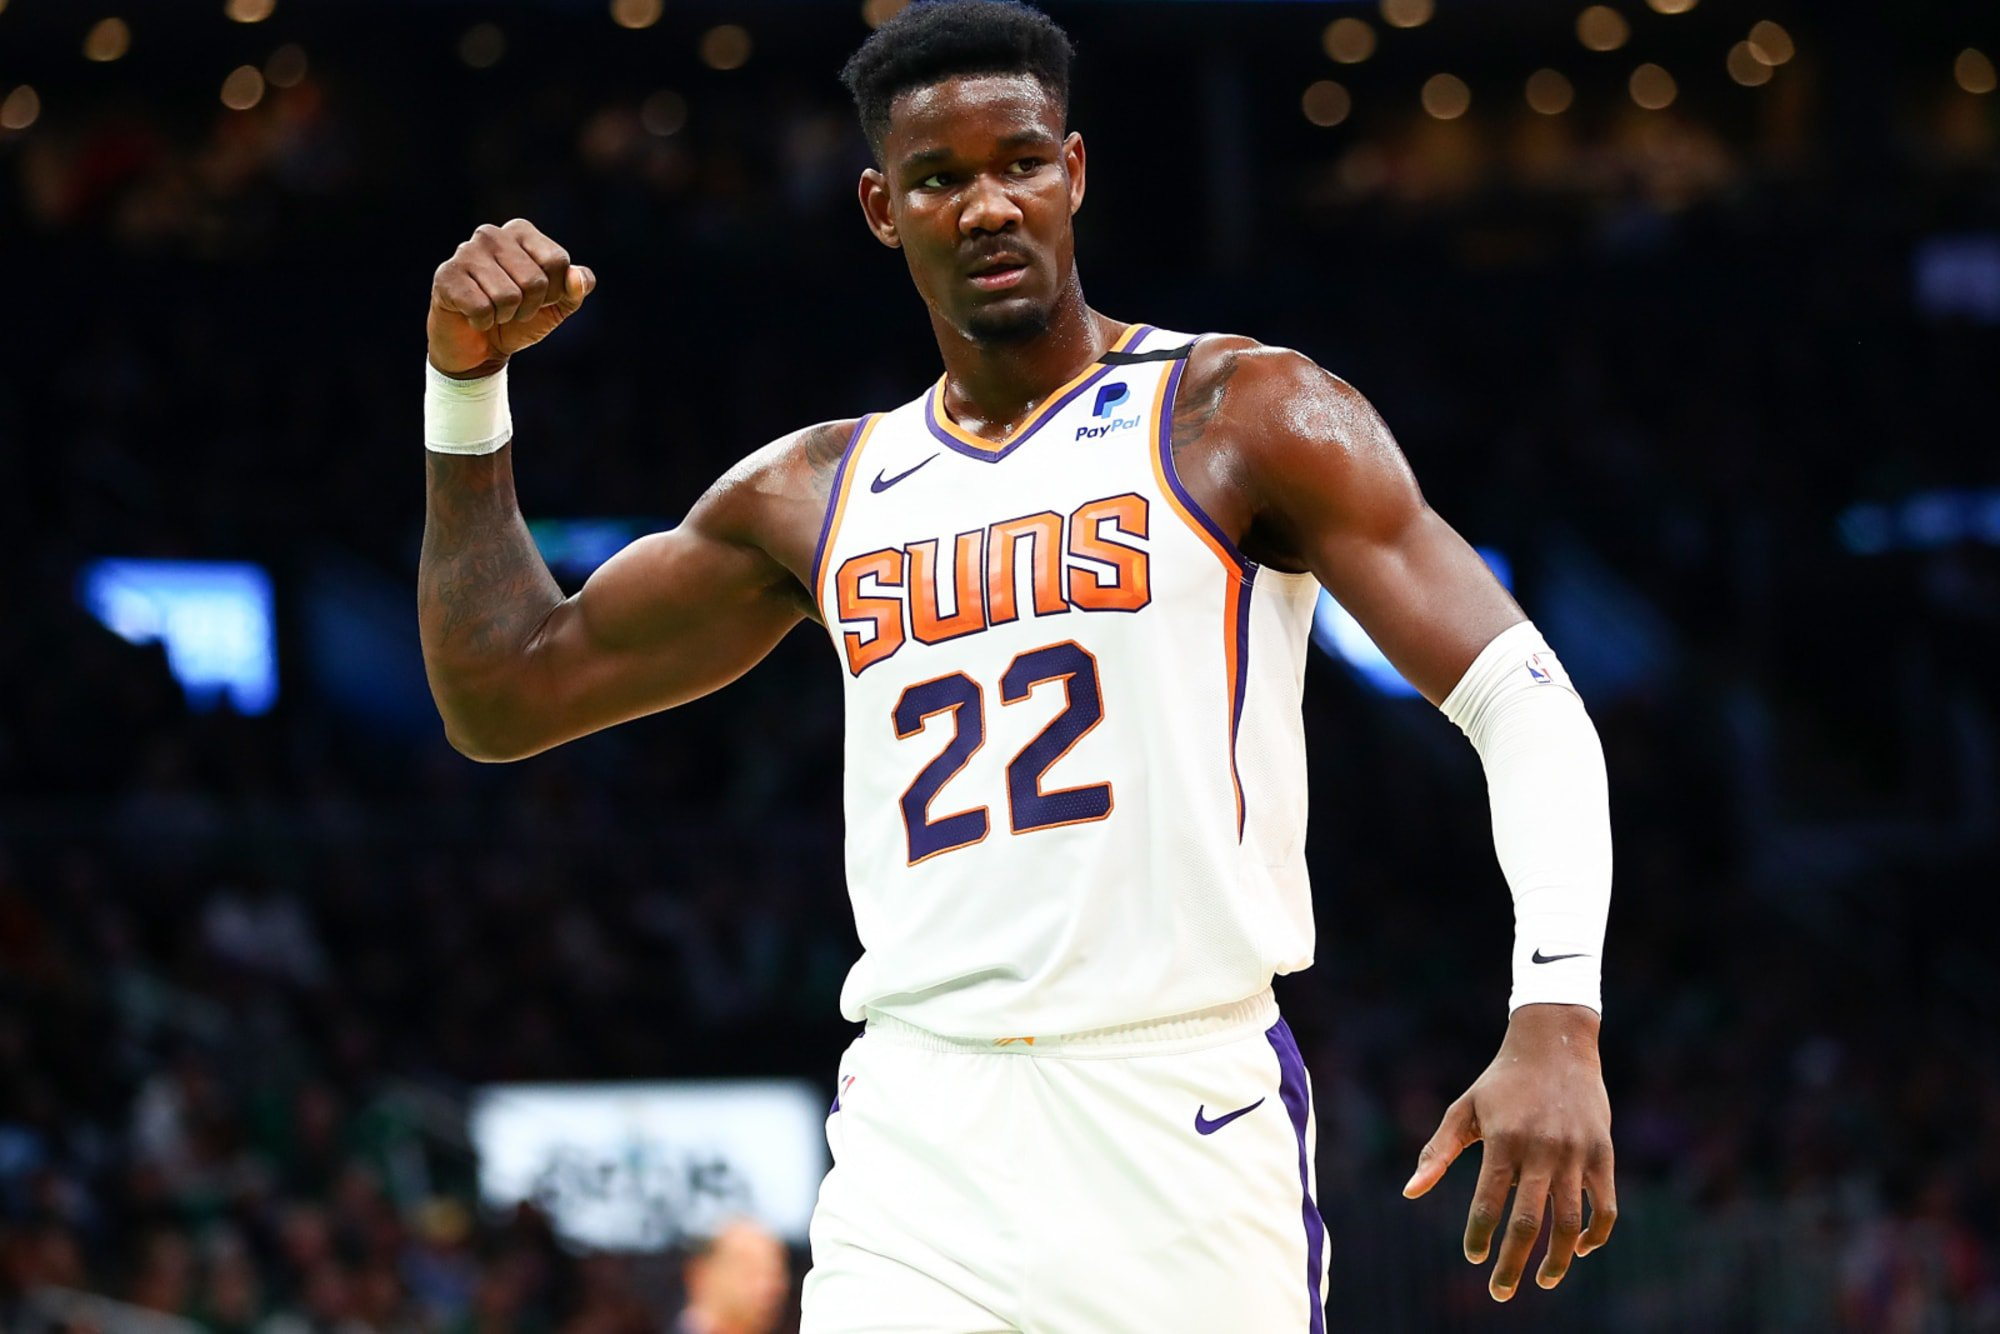 Suns vs Clippers Game 3 Betting Preview:  Do the Clippers Have Another Series Turnaround in Them?